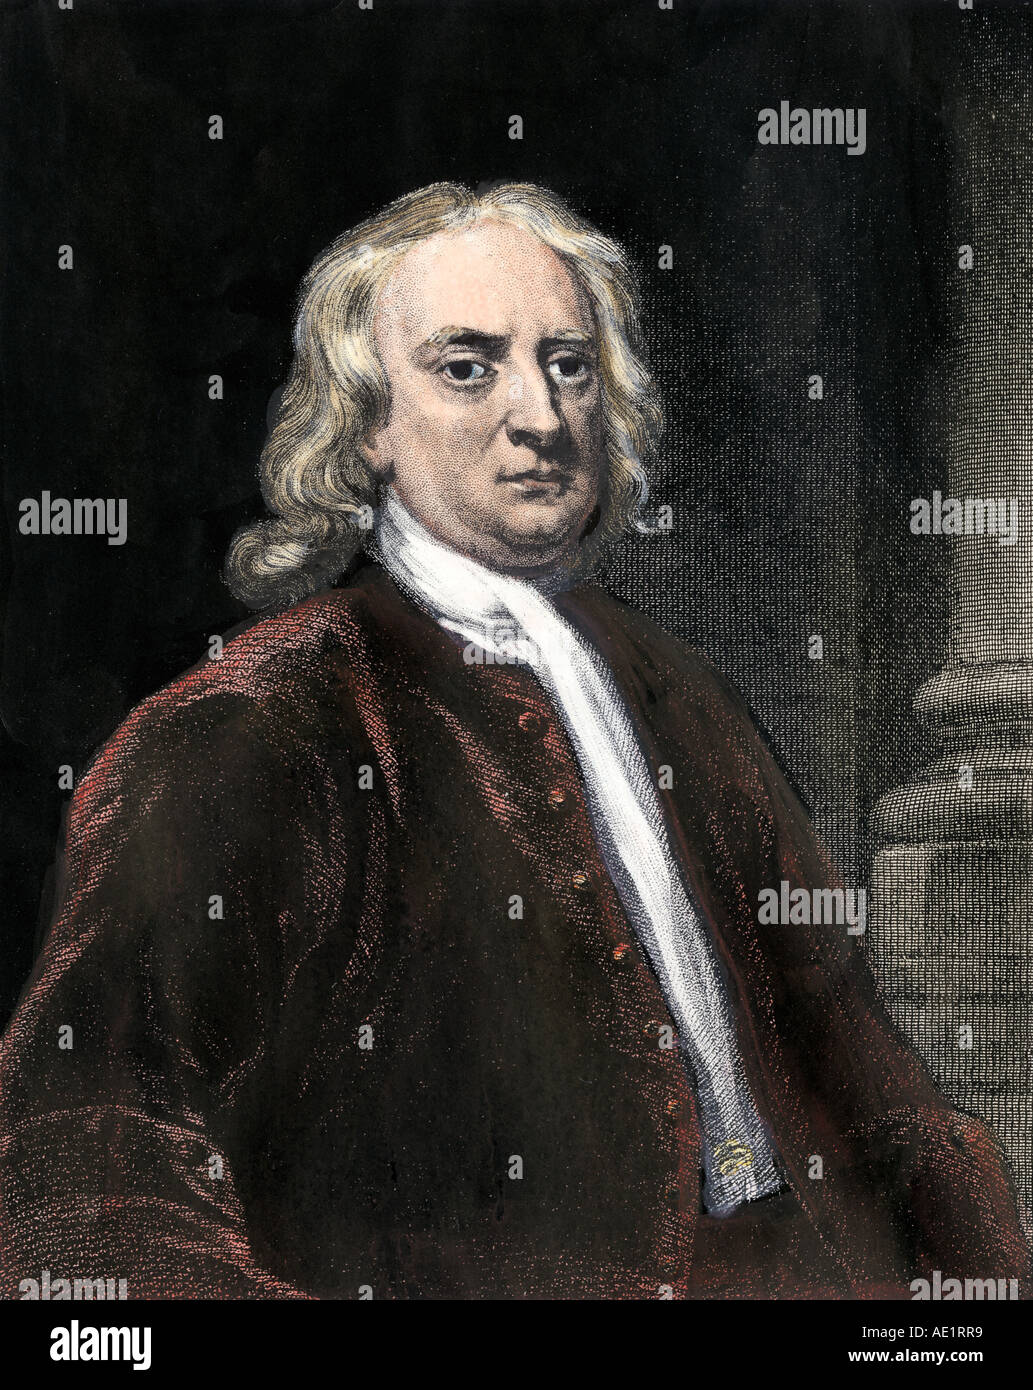 Sir Isaac Newton. Hand-colored steel engraving - Stock Image